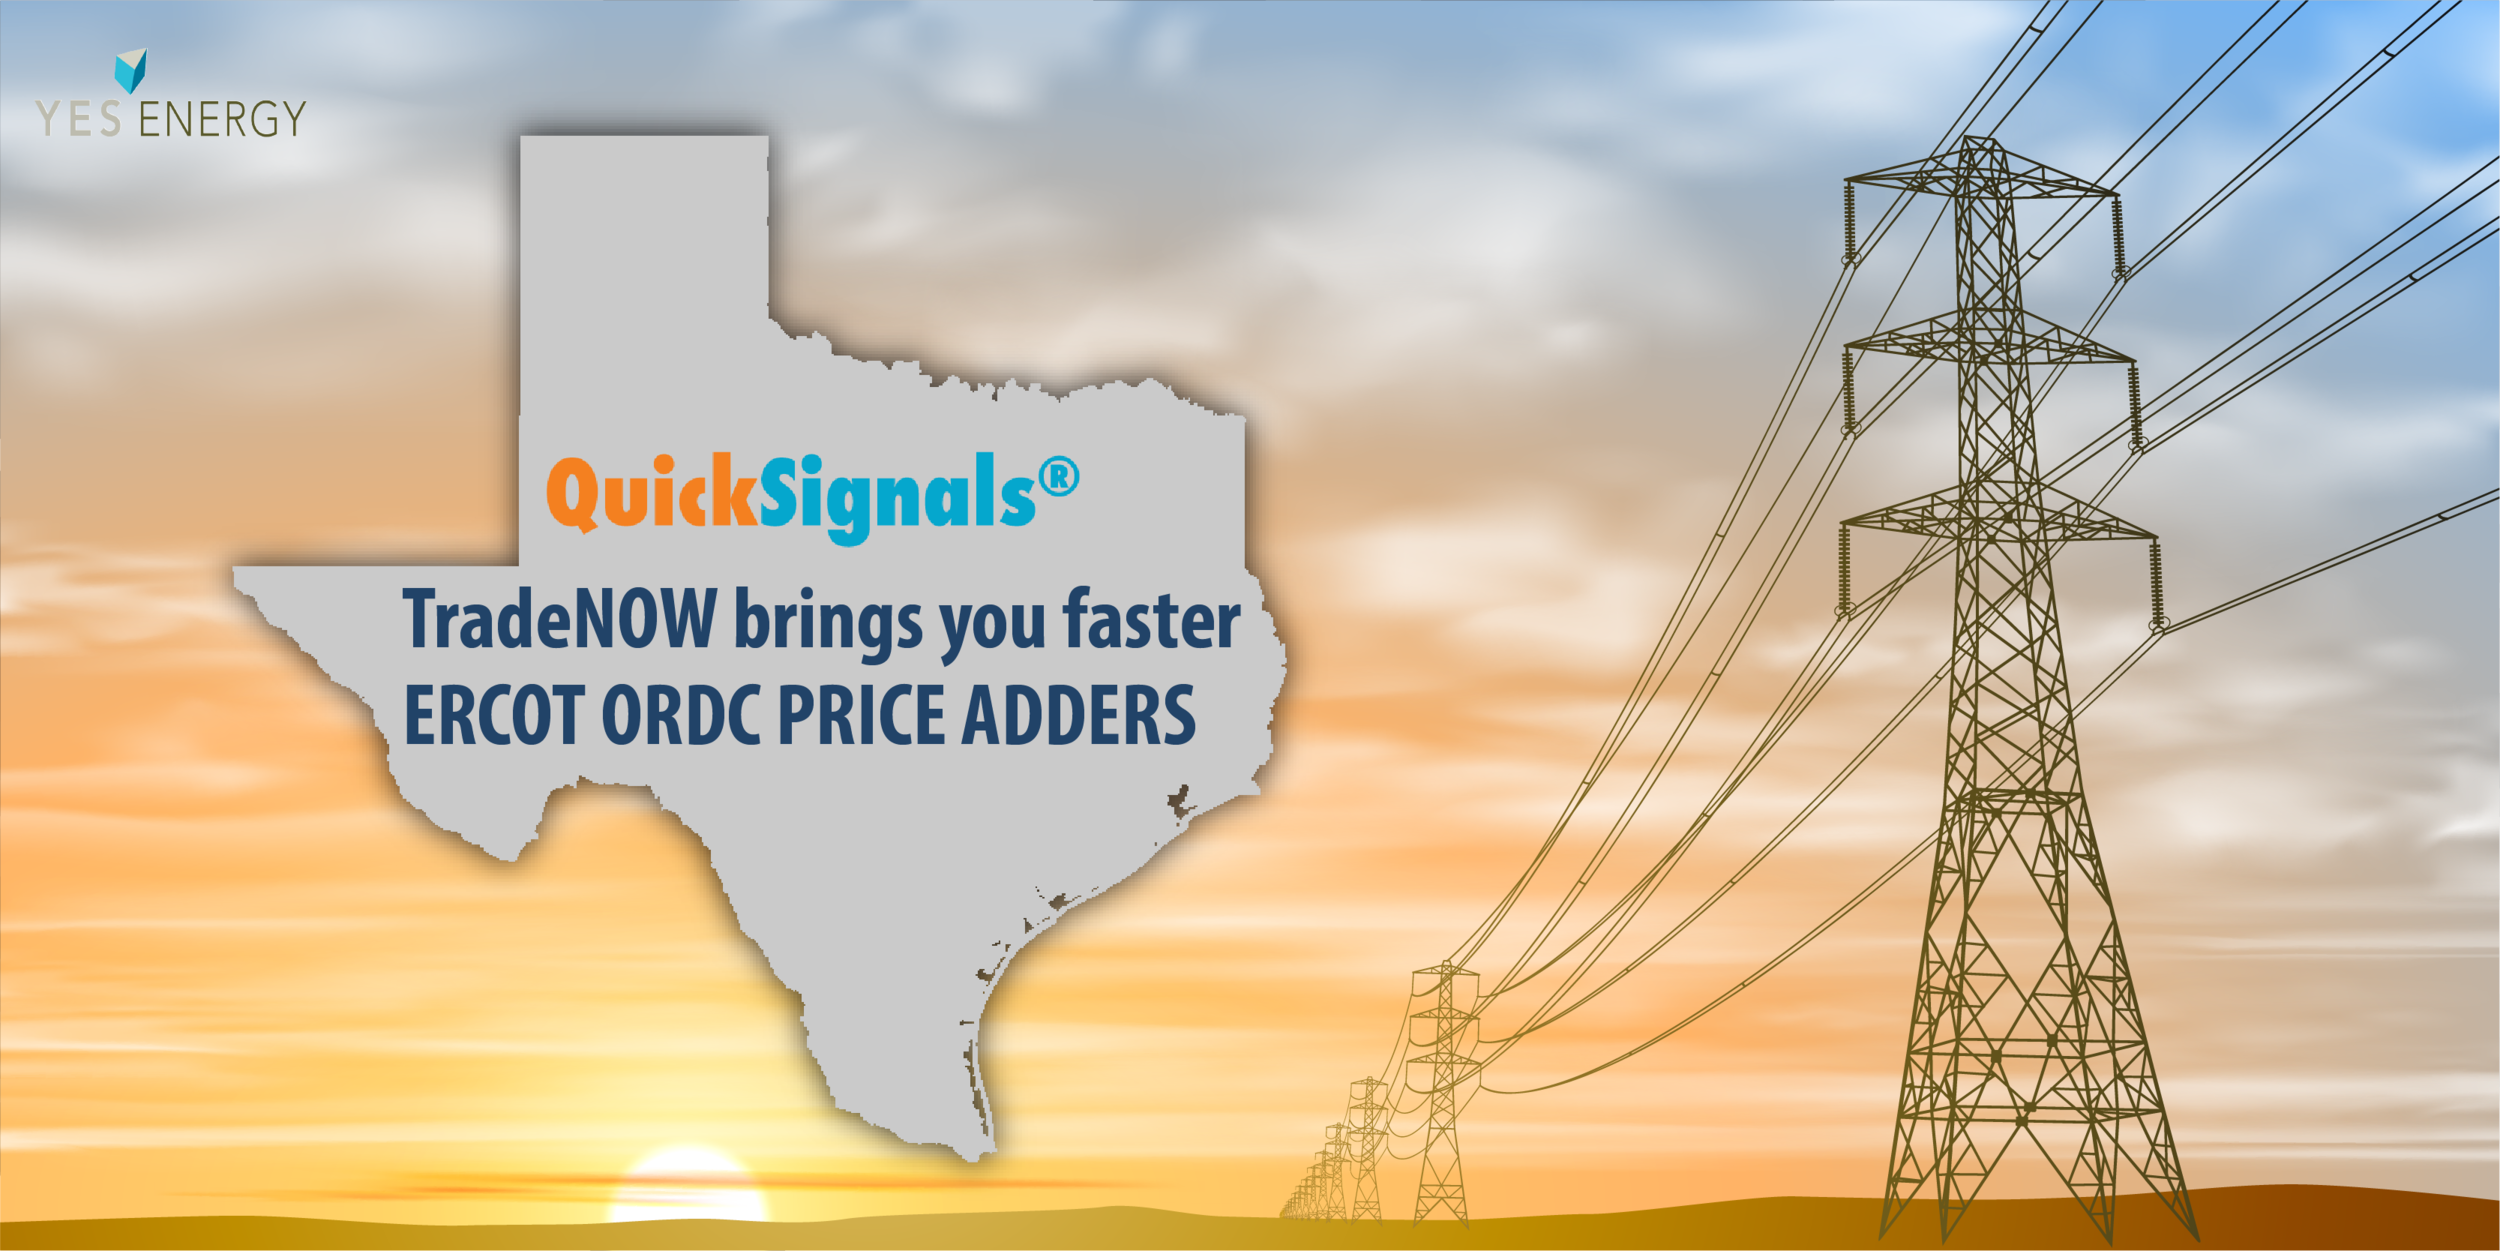 ERCOT ORDC image-01.png